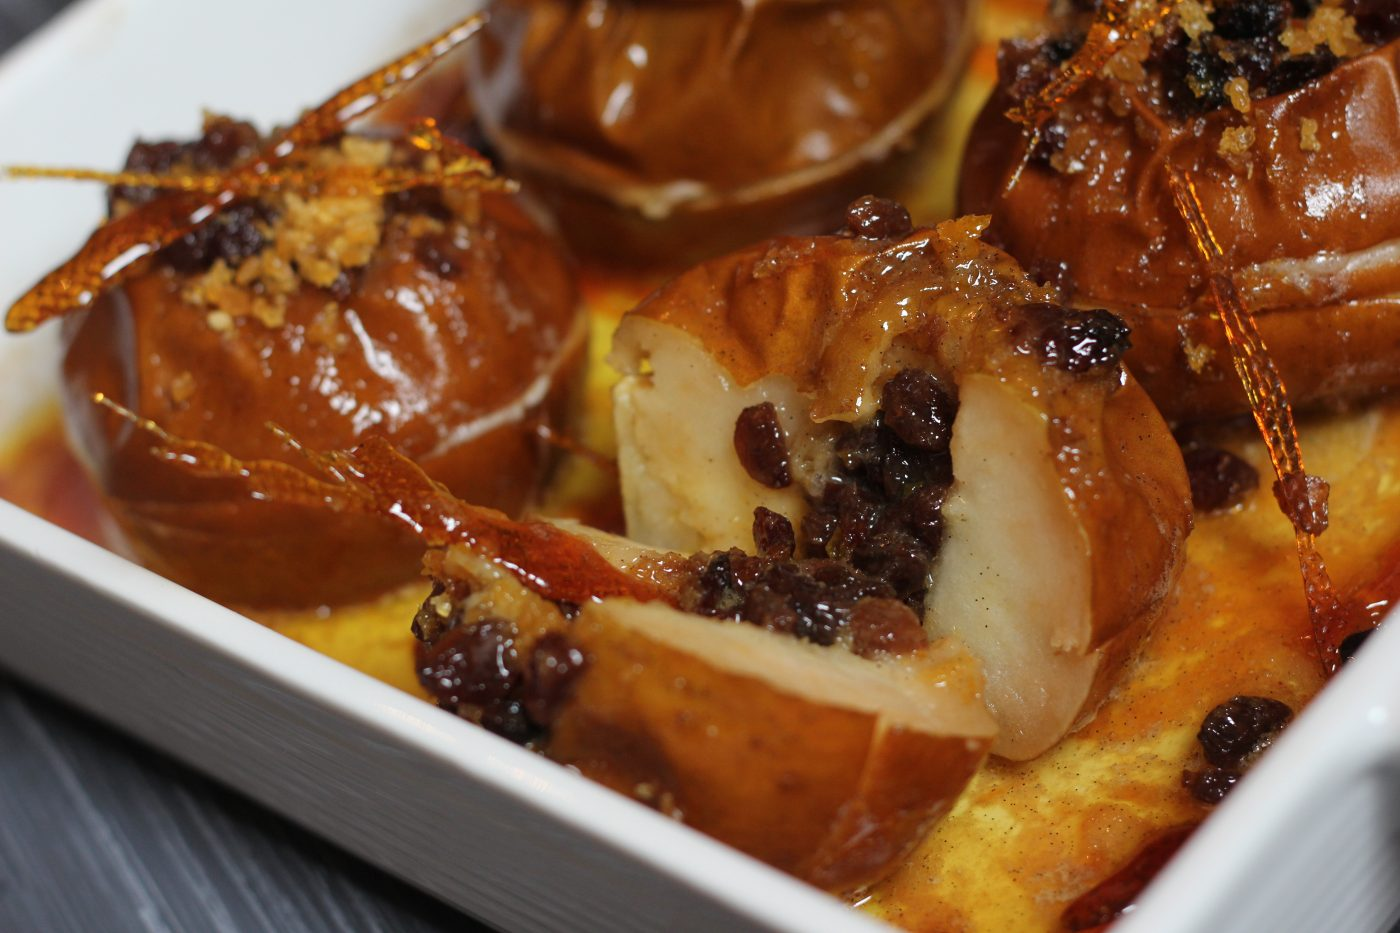 Baked Apples with Raisins and Rum Caramel Sauce